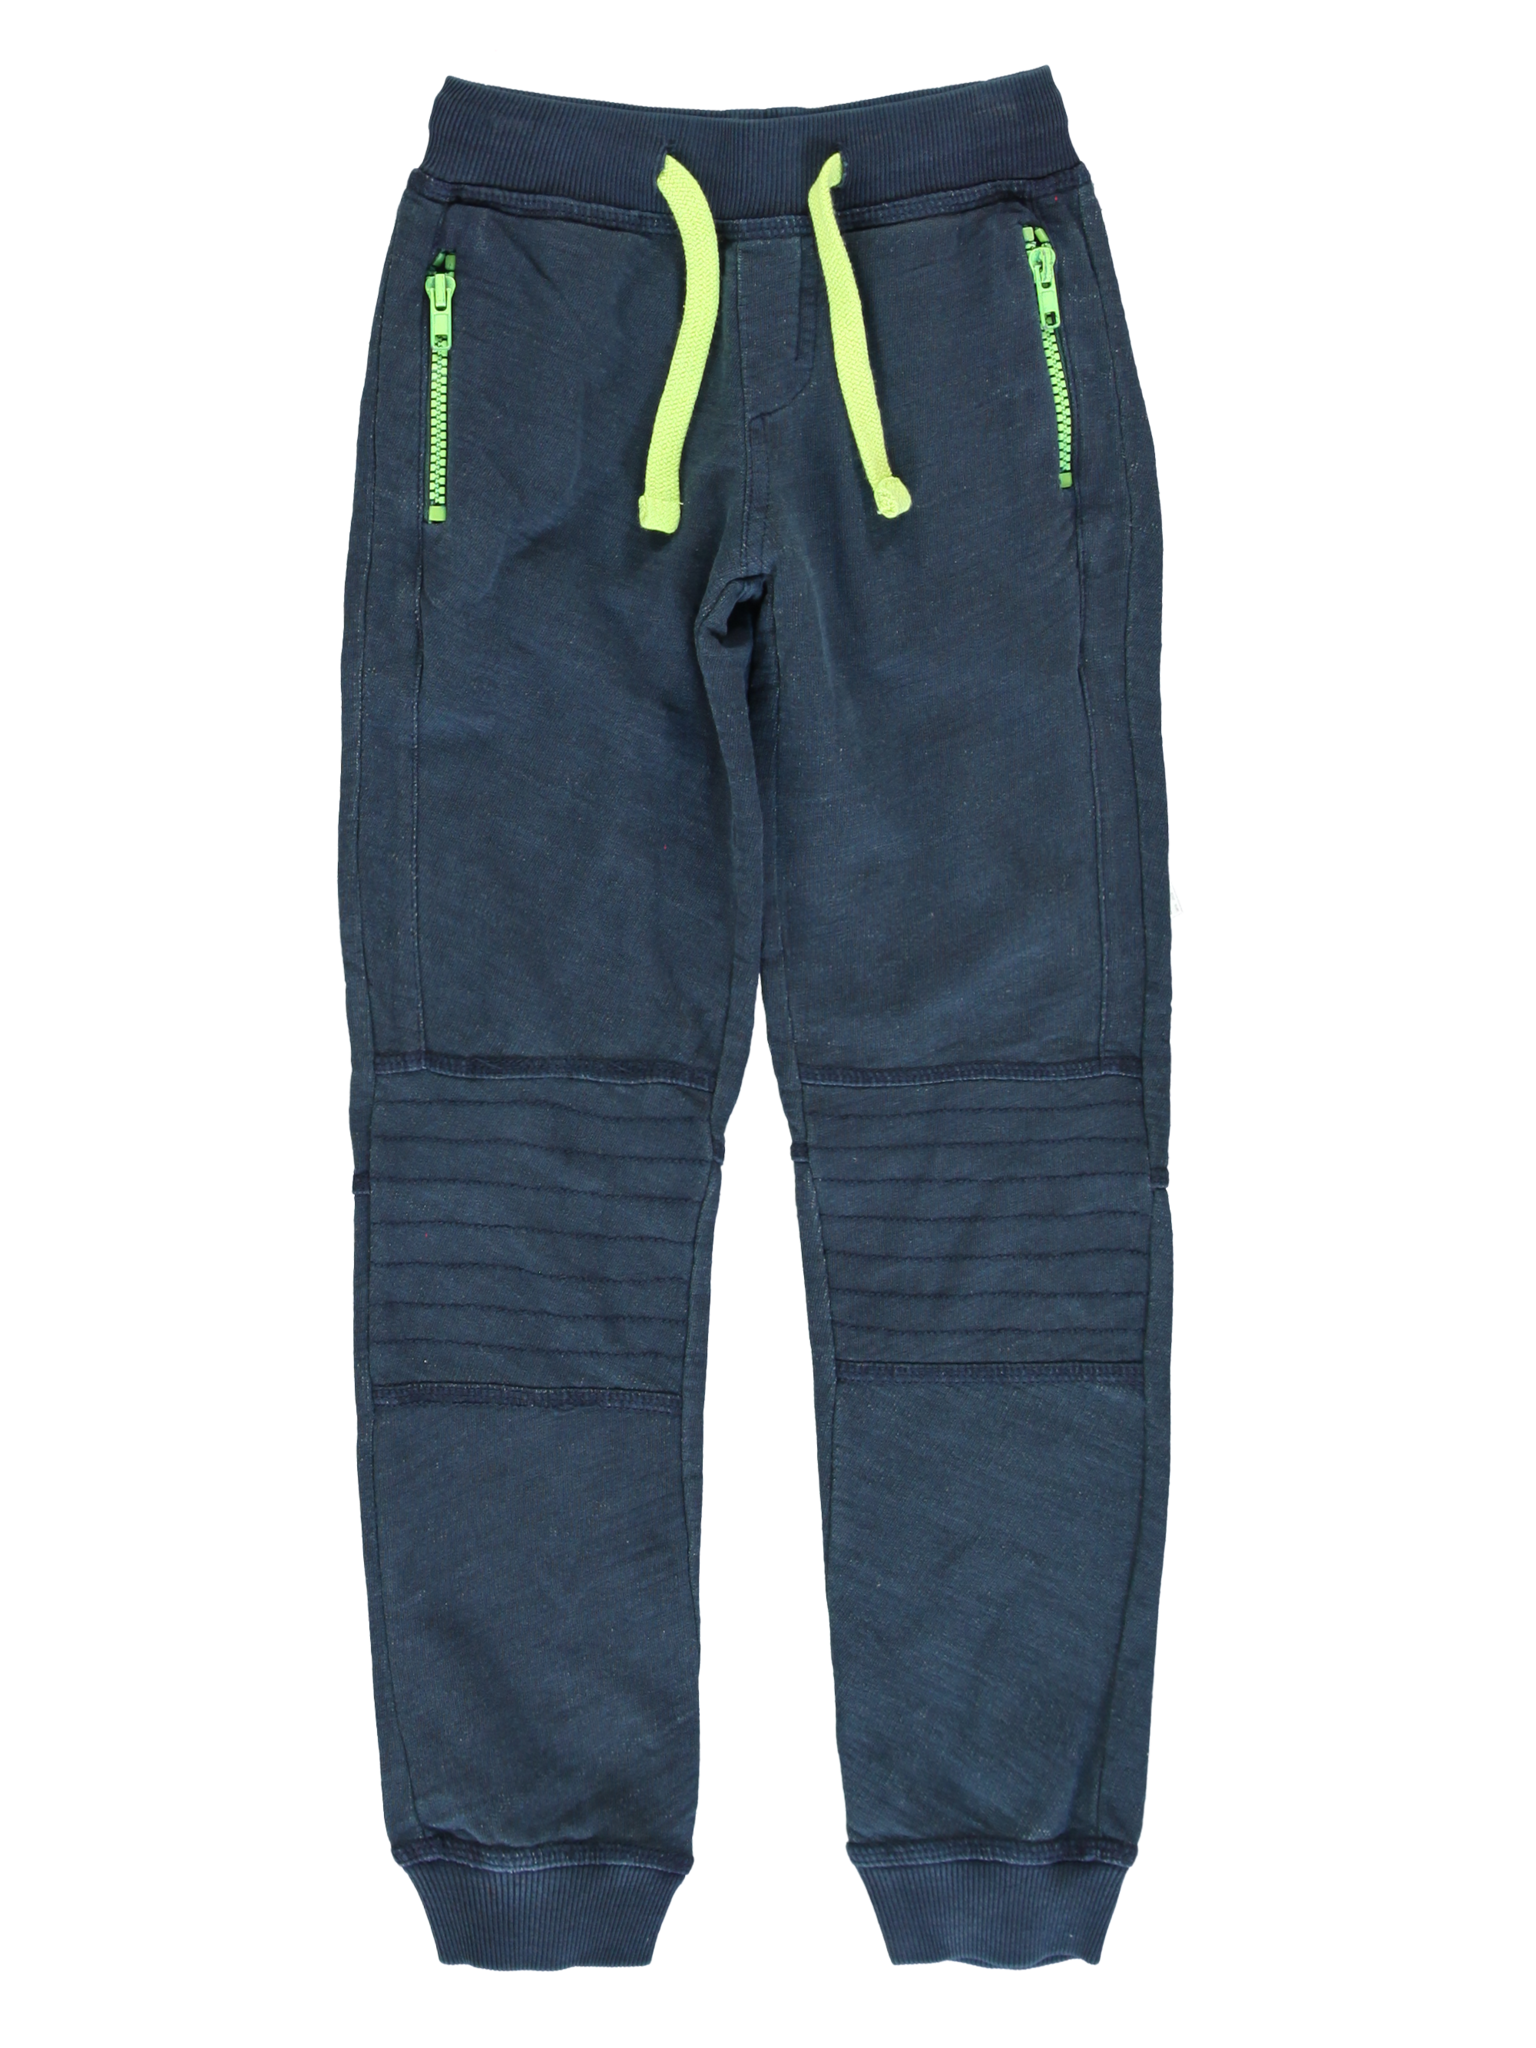 All Brands | Summerproducts Small Boys | Jogging Pant | 10 pcs/box